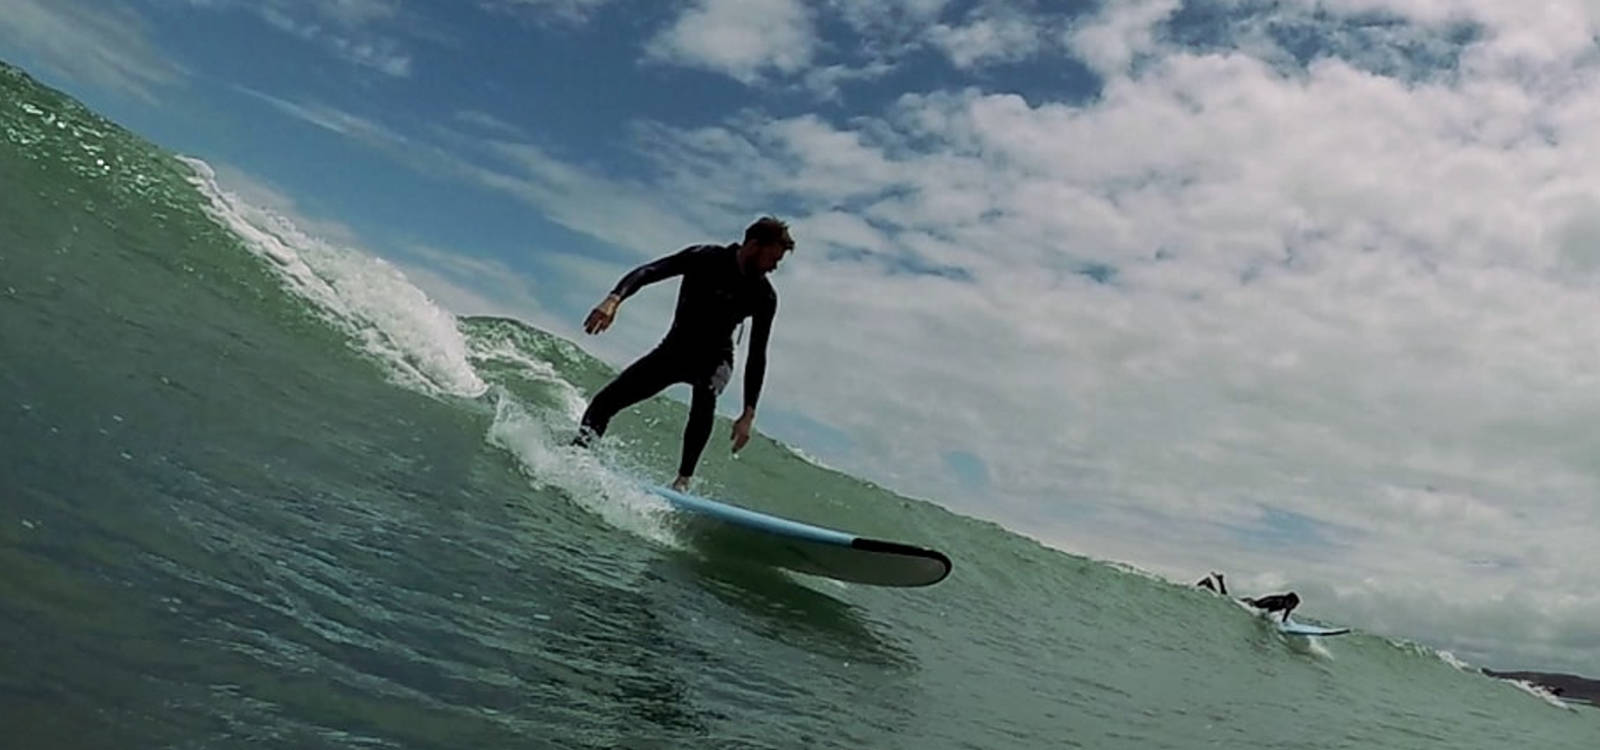 About UP Surf Coaching, a surf school in Raglan, New Zealand.